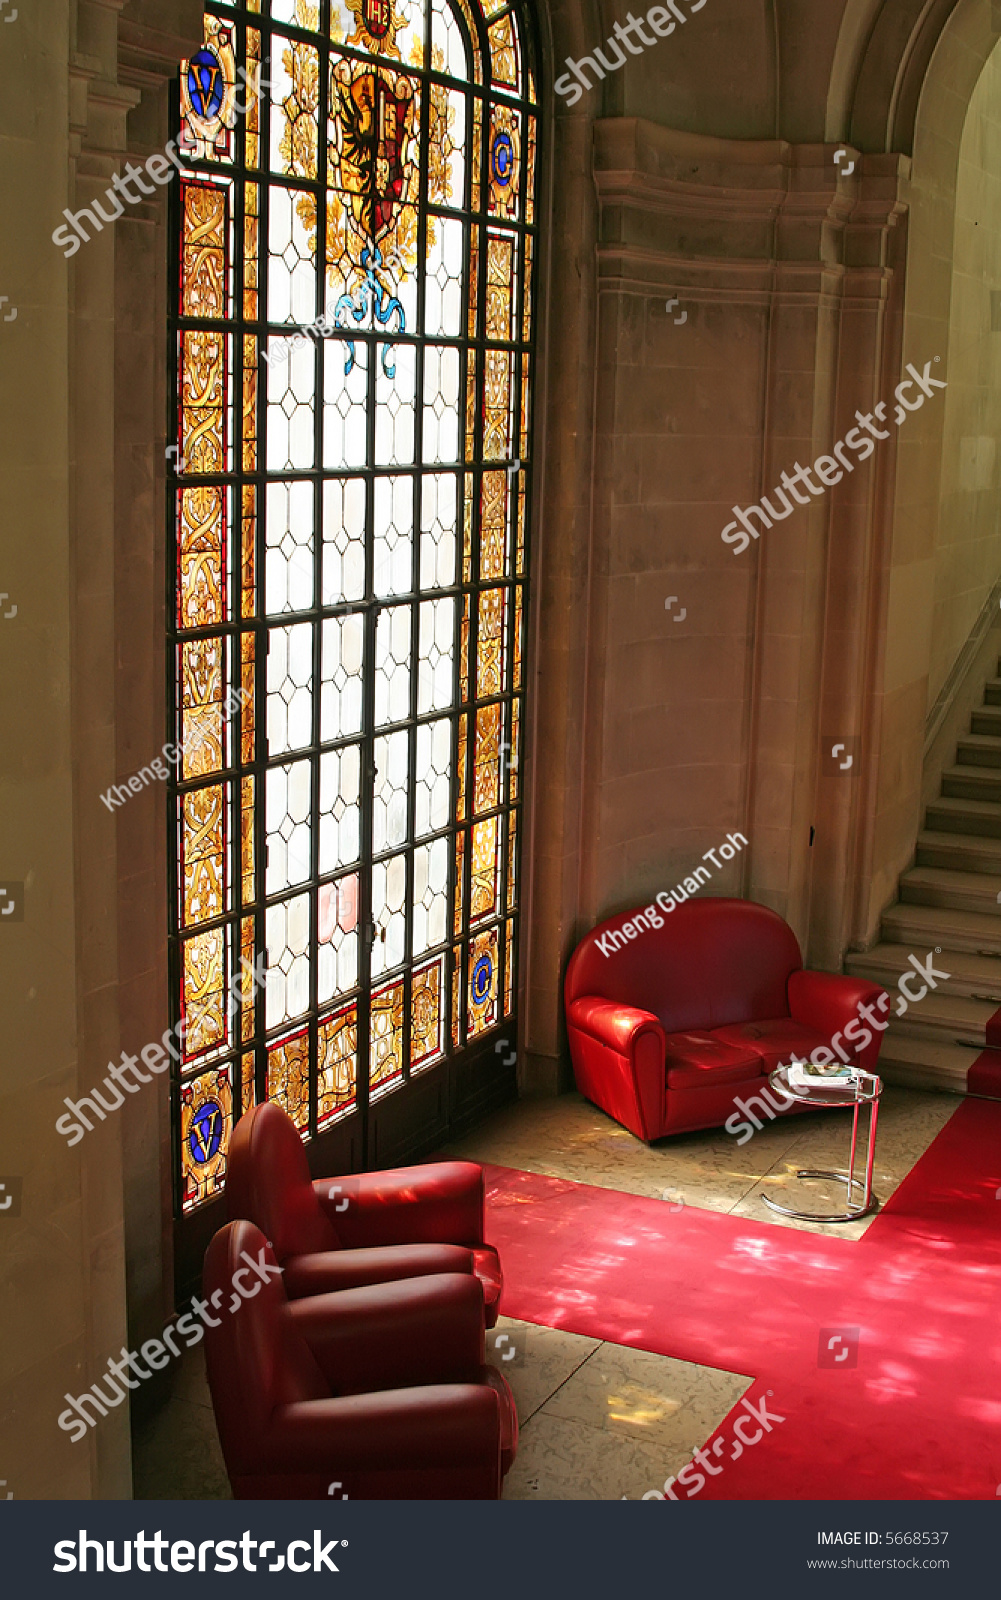 Sofas Waiting Area Stained Glass Window Stock Photo 5668537 ...